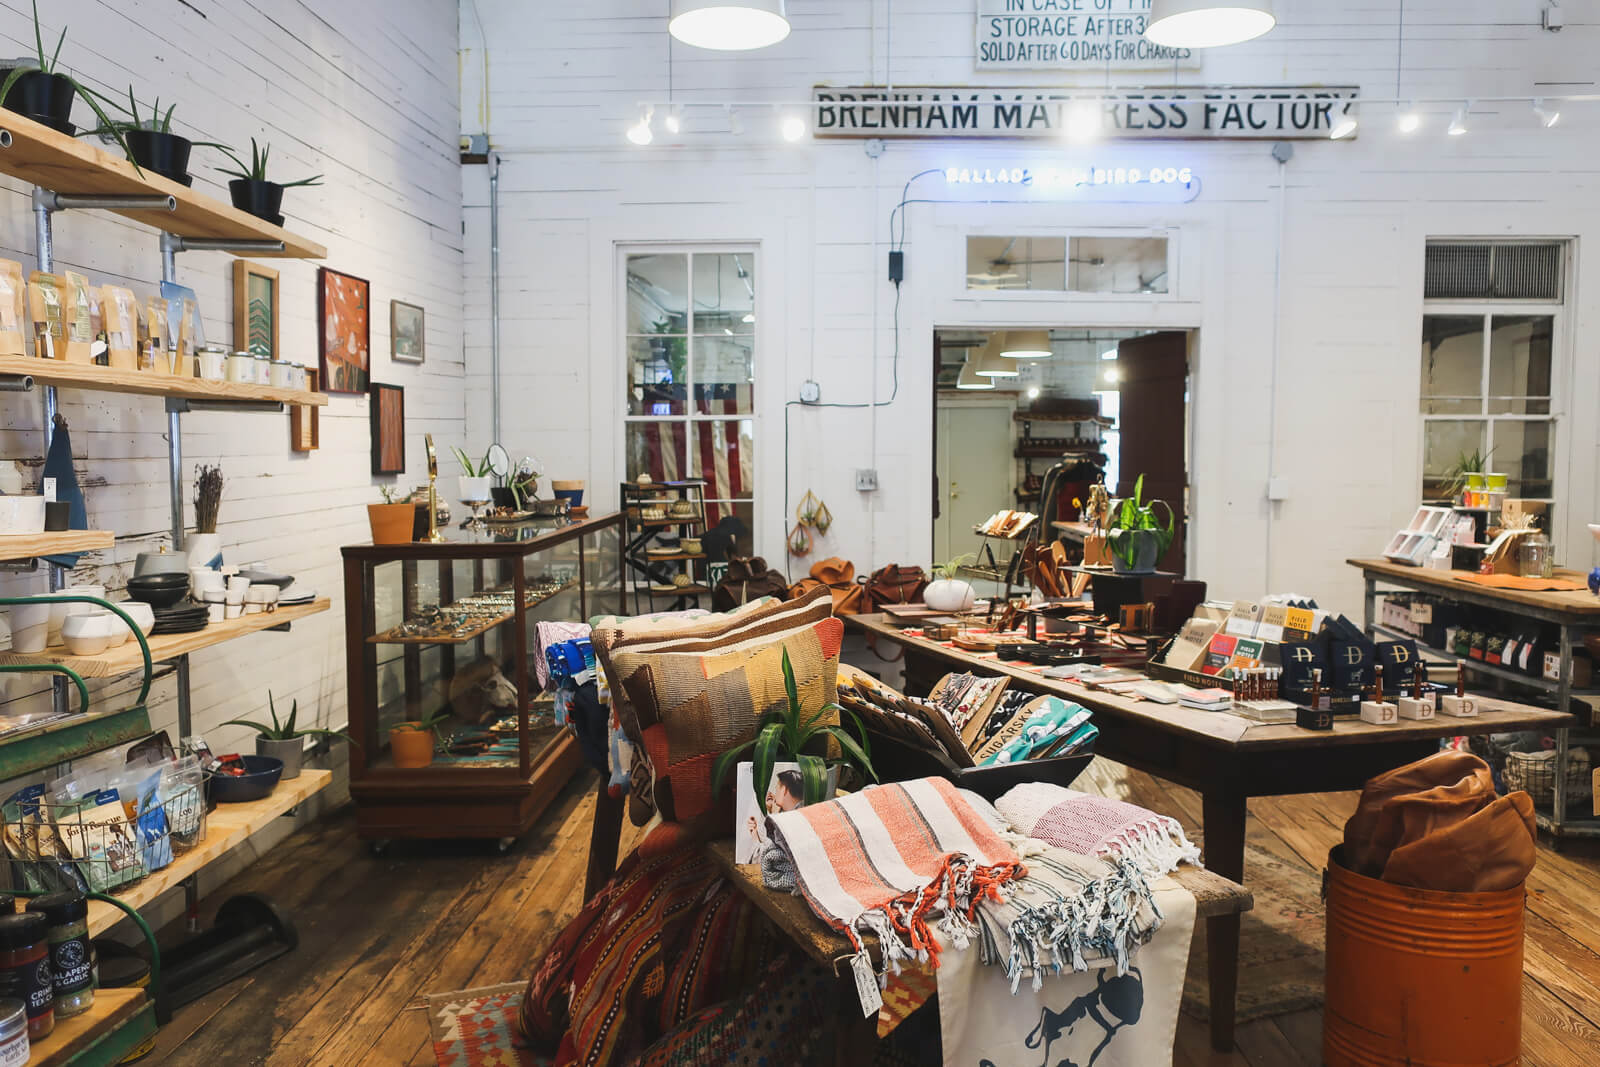 White washed rustic boards line a room of a store filled iwth antiques, jewelry and scarves in a small shop in Brenham Texas